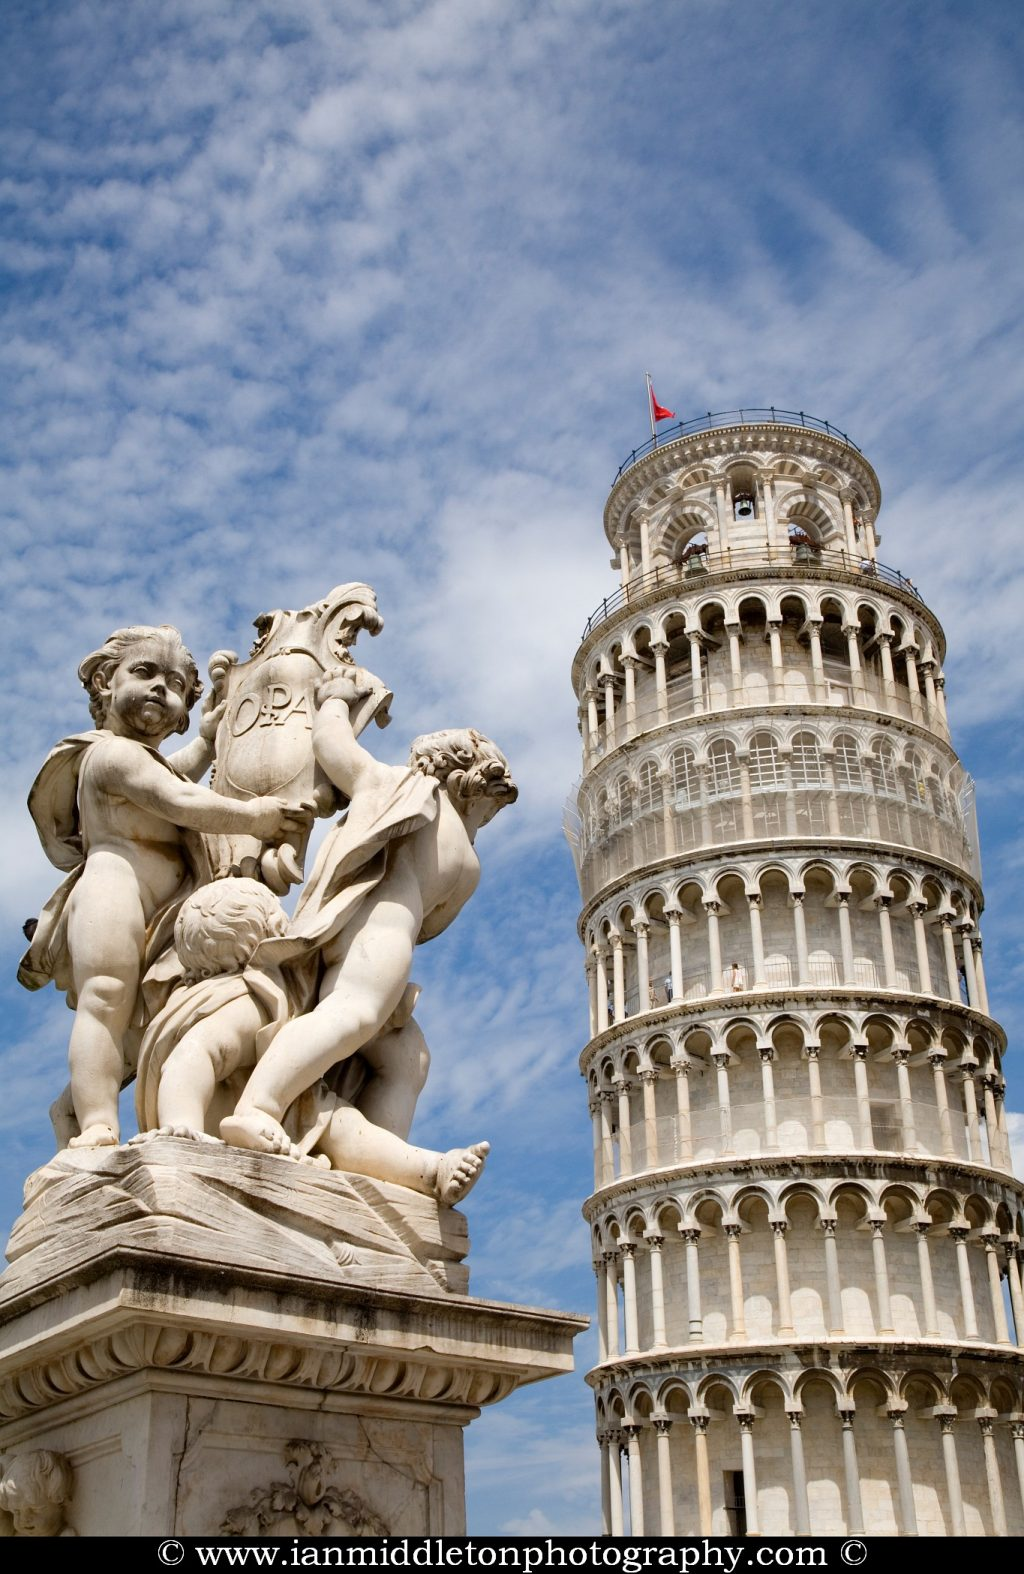 The Cherubs in front of the Leaning tower in Campo di Miracoli (field of Miracles), Pisa, Tuscany, Italy